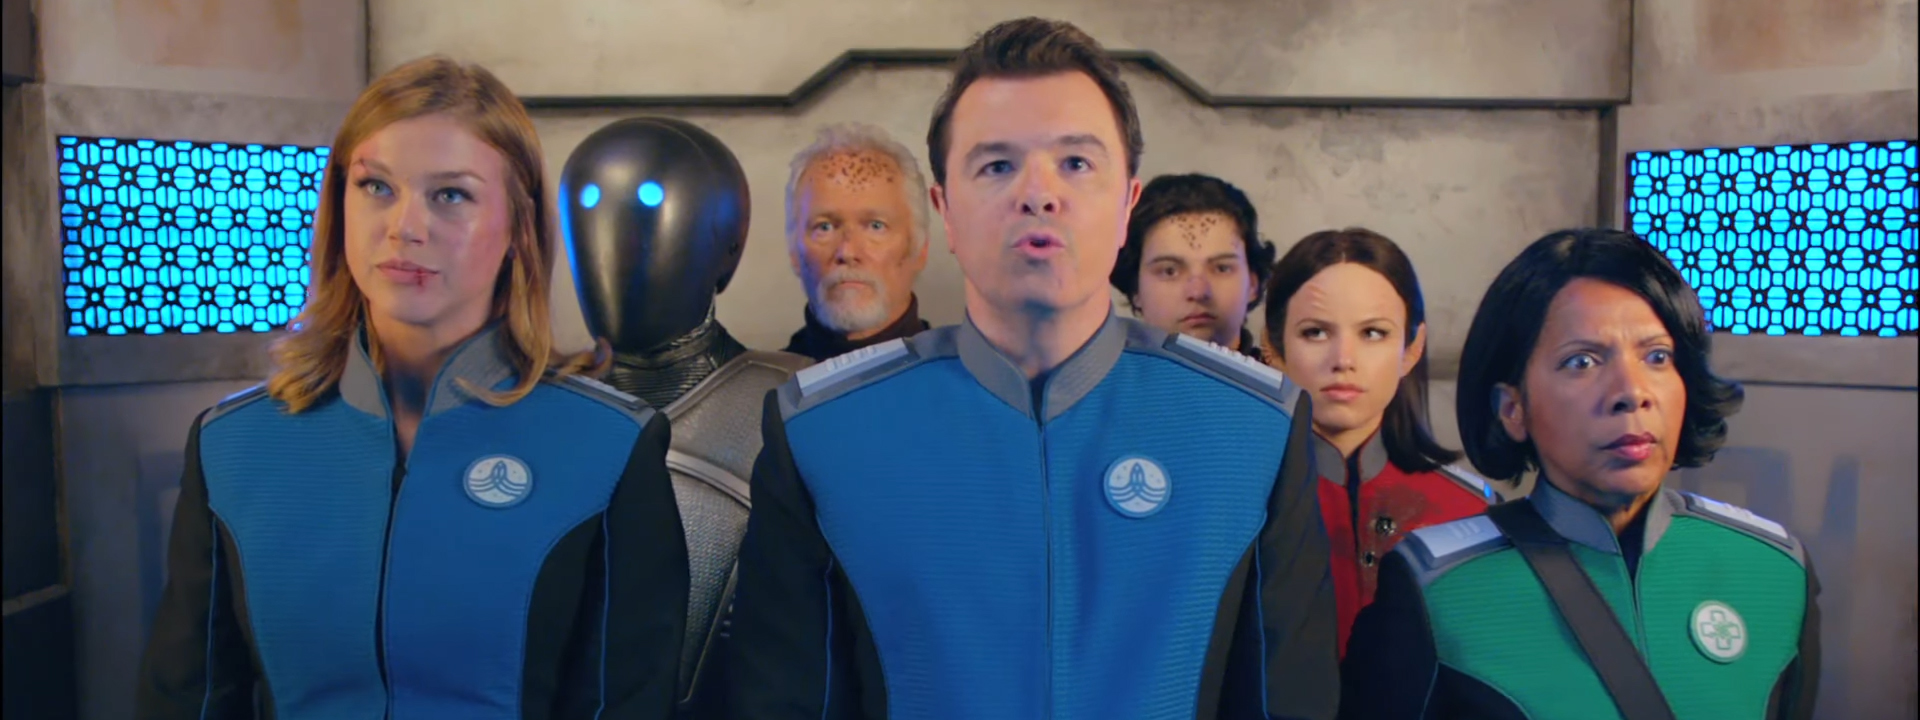 The Orville. Image Credit: 20th Century Fox & Fuzzy Door Productions.